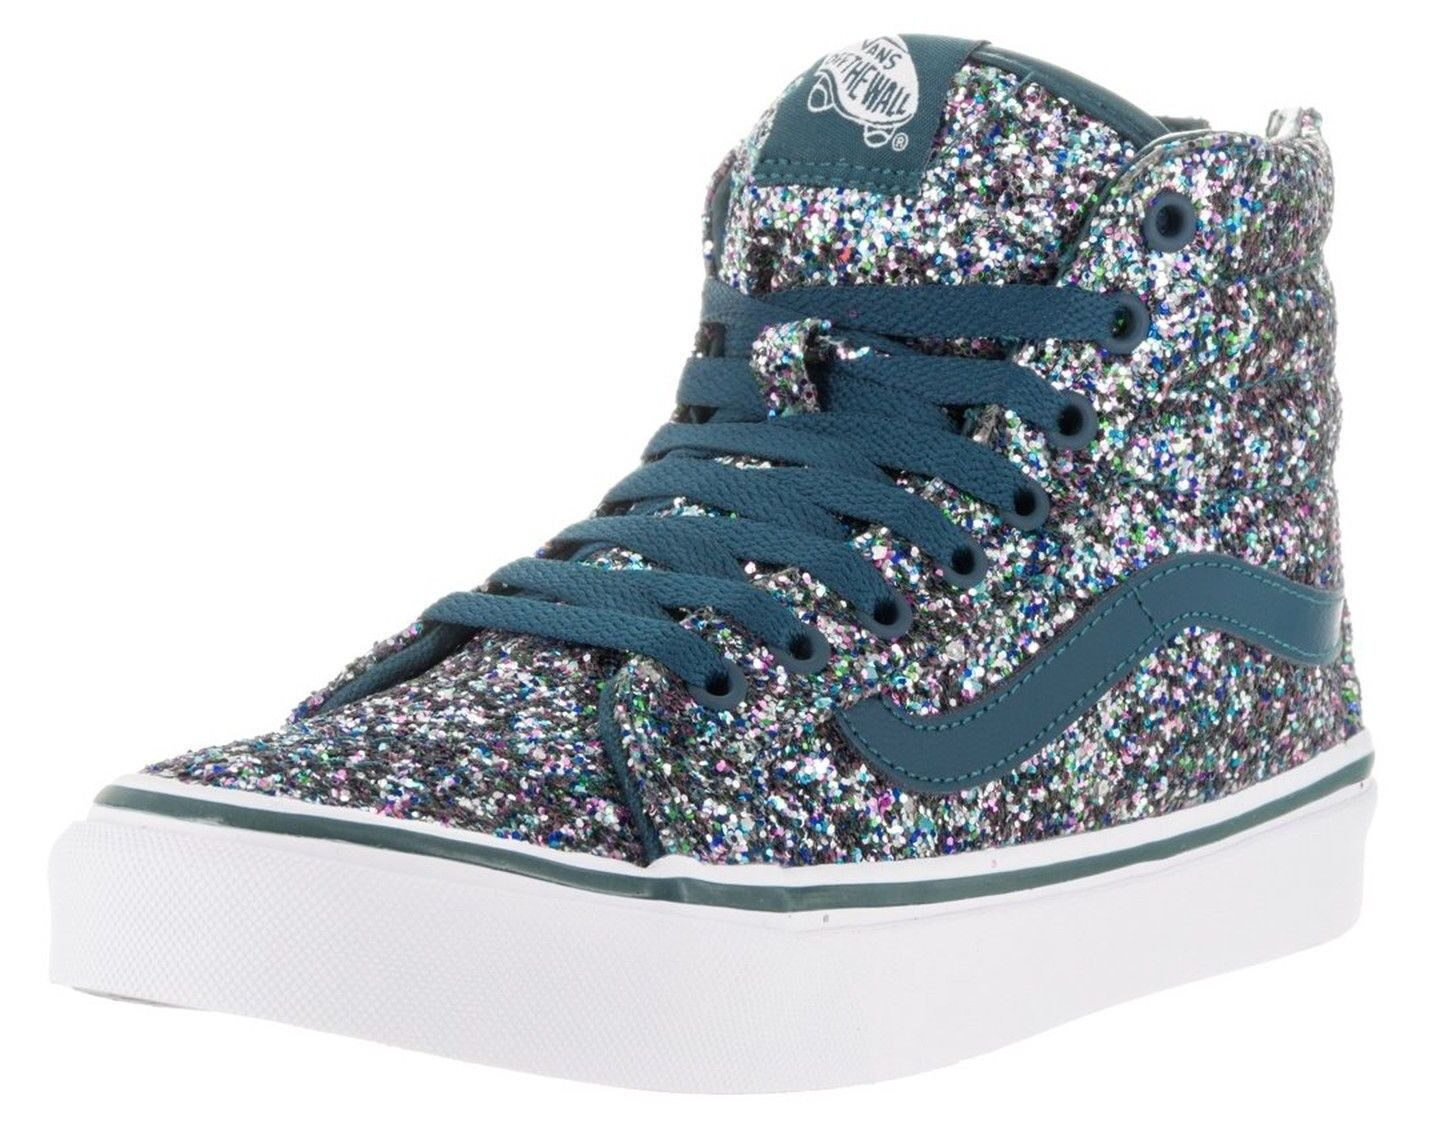 NEW NIB VANS SK8-HI SLIM (CHUNKY GLITTER) ATLANTIC DEEP SZ 5.5 WOMENS OR MENS 4